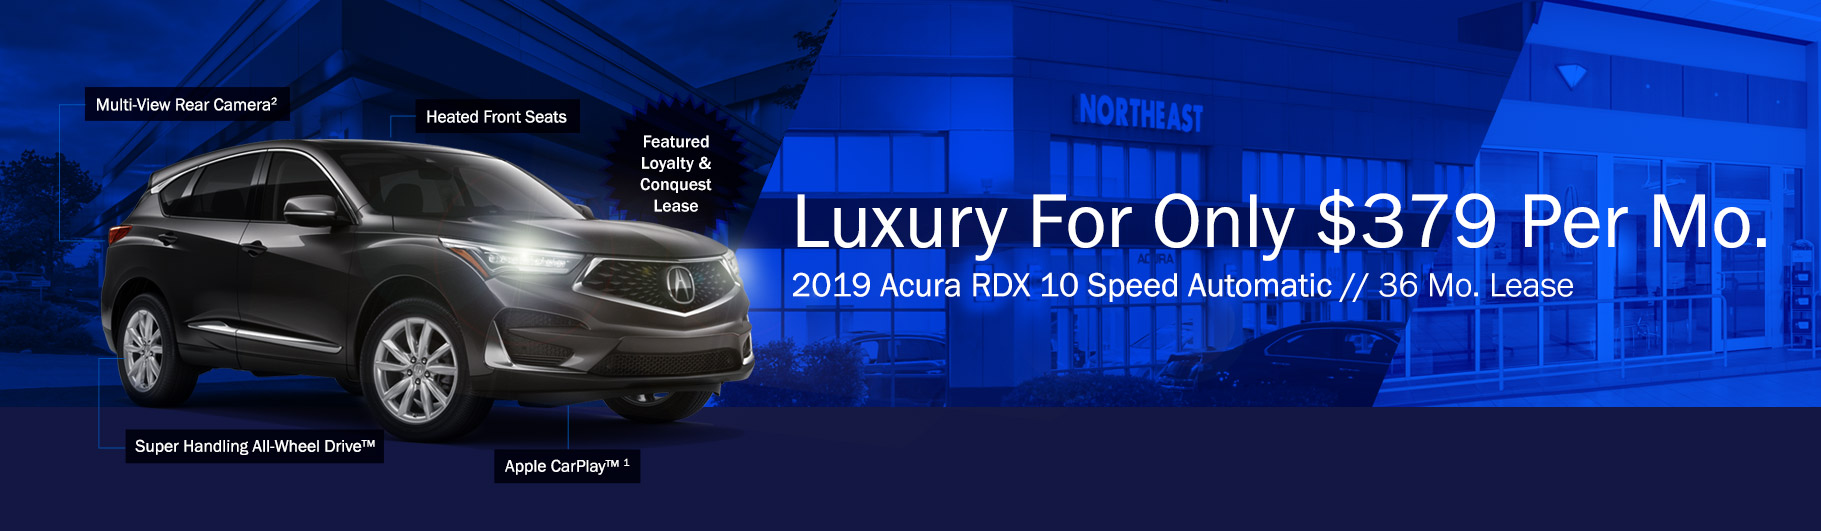 Featured Loyalty & Conquest Lease - 2019 Acura RDX 10 Speed Automatic - Lease for $379 per month for 36 months. Multi-View Rear Camera, Heated Front Seats, Super Handling All-Wheel Drive, Apple CarPay